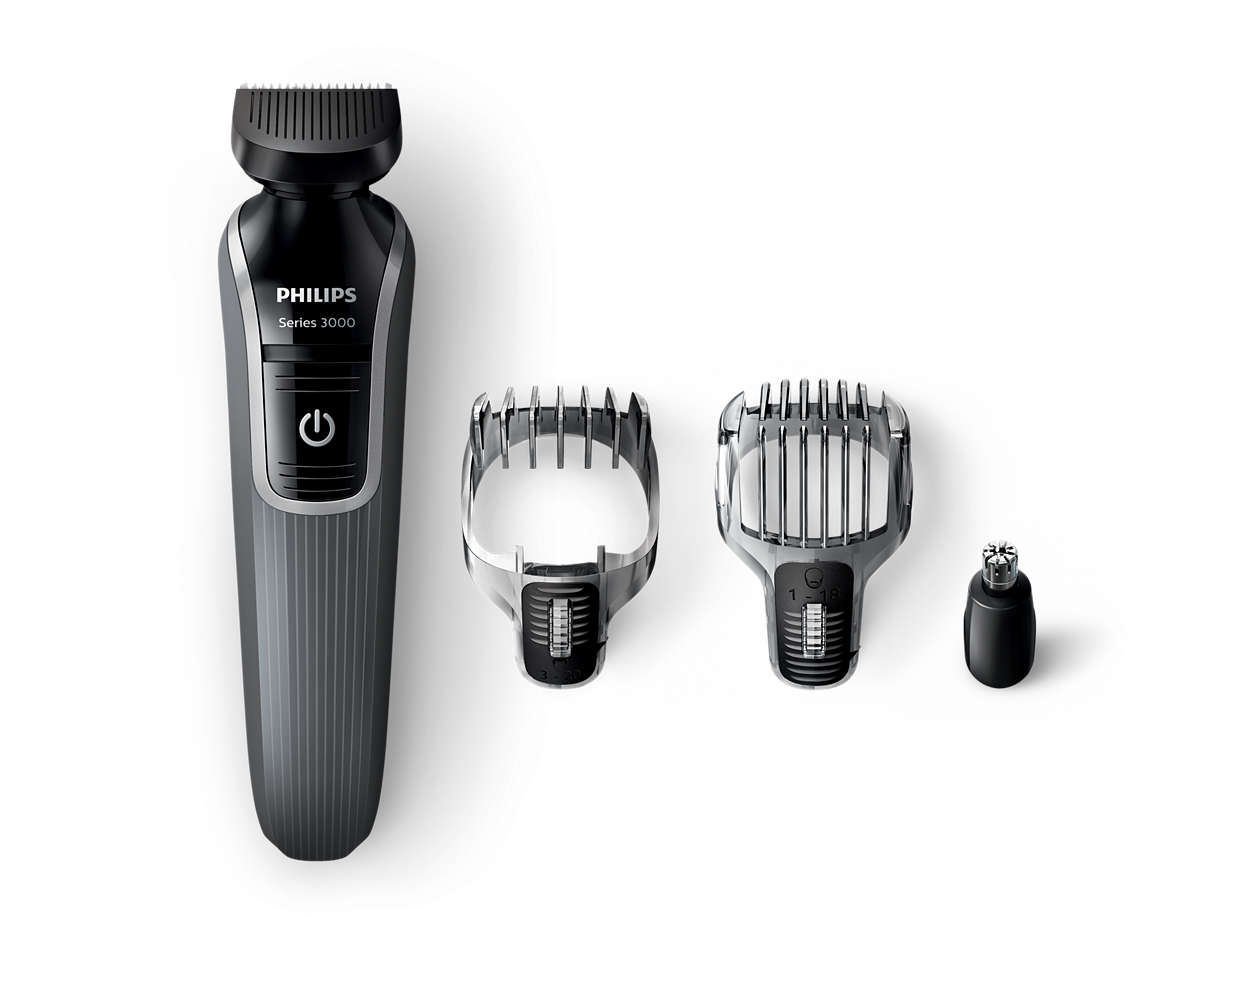 multigroom series 3000 4 in 1 beard and hair trimmer qg3332 23 philips. Black Bedroom Furniture Sets. Home Design Ideas